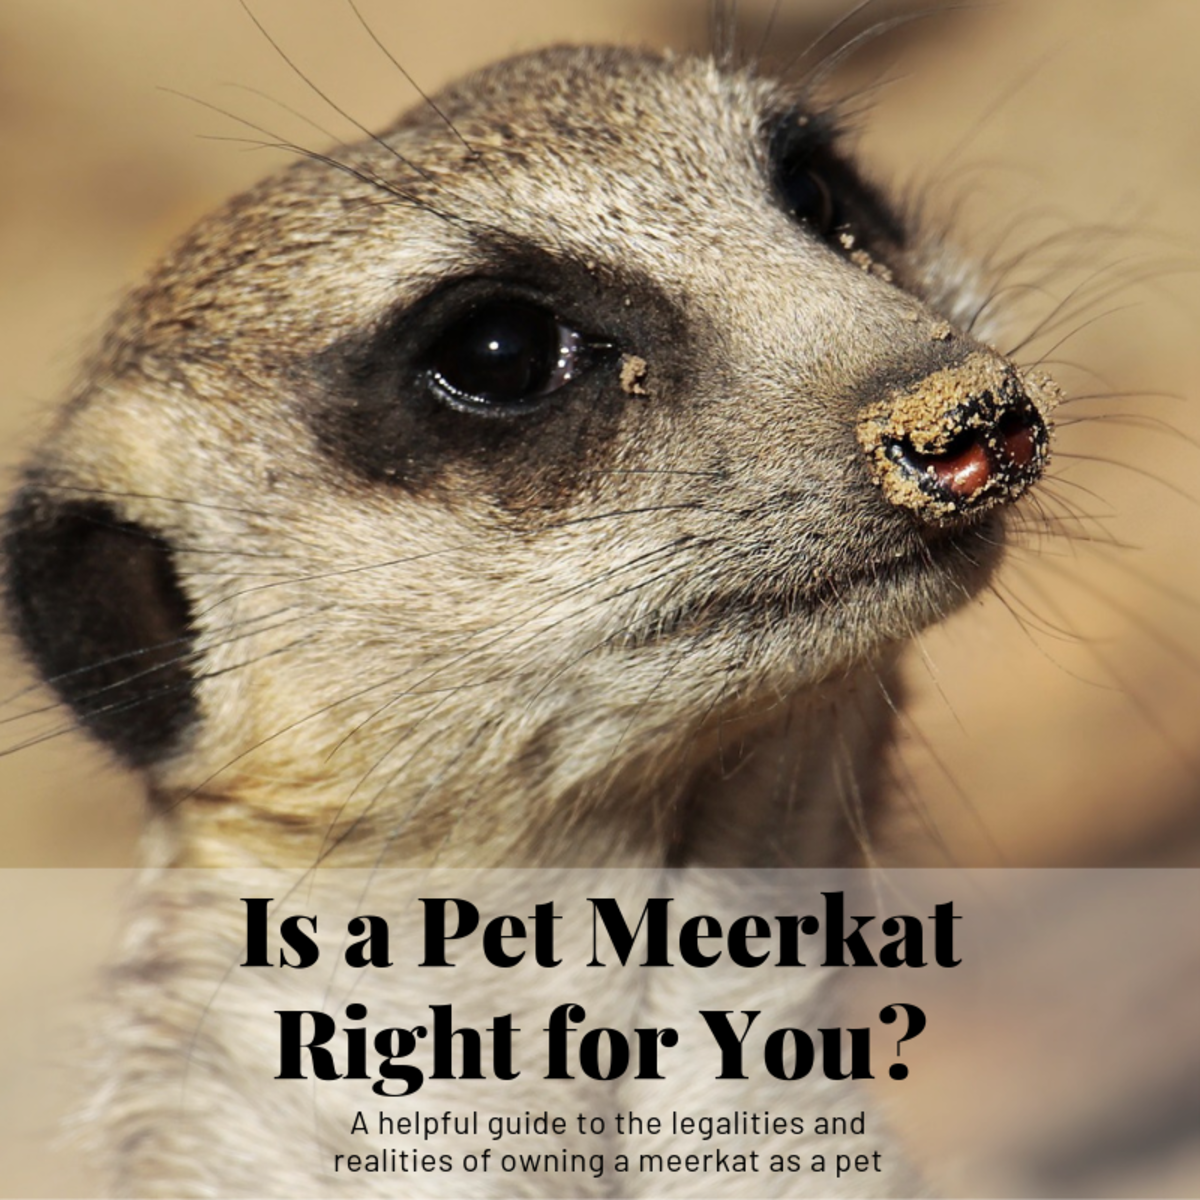 This guide will break down what it's like to own a meerkat as a pet and illustrate why that may not be such a good idea.